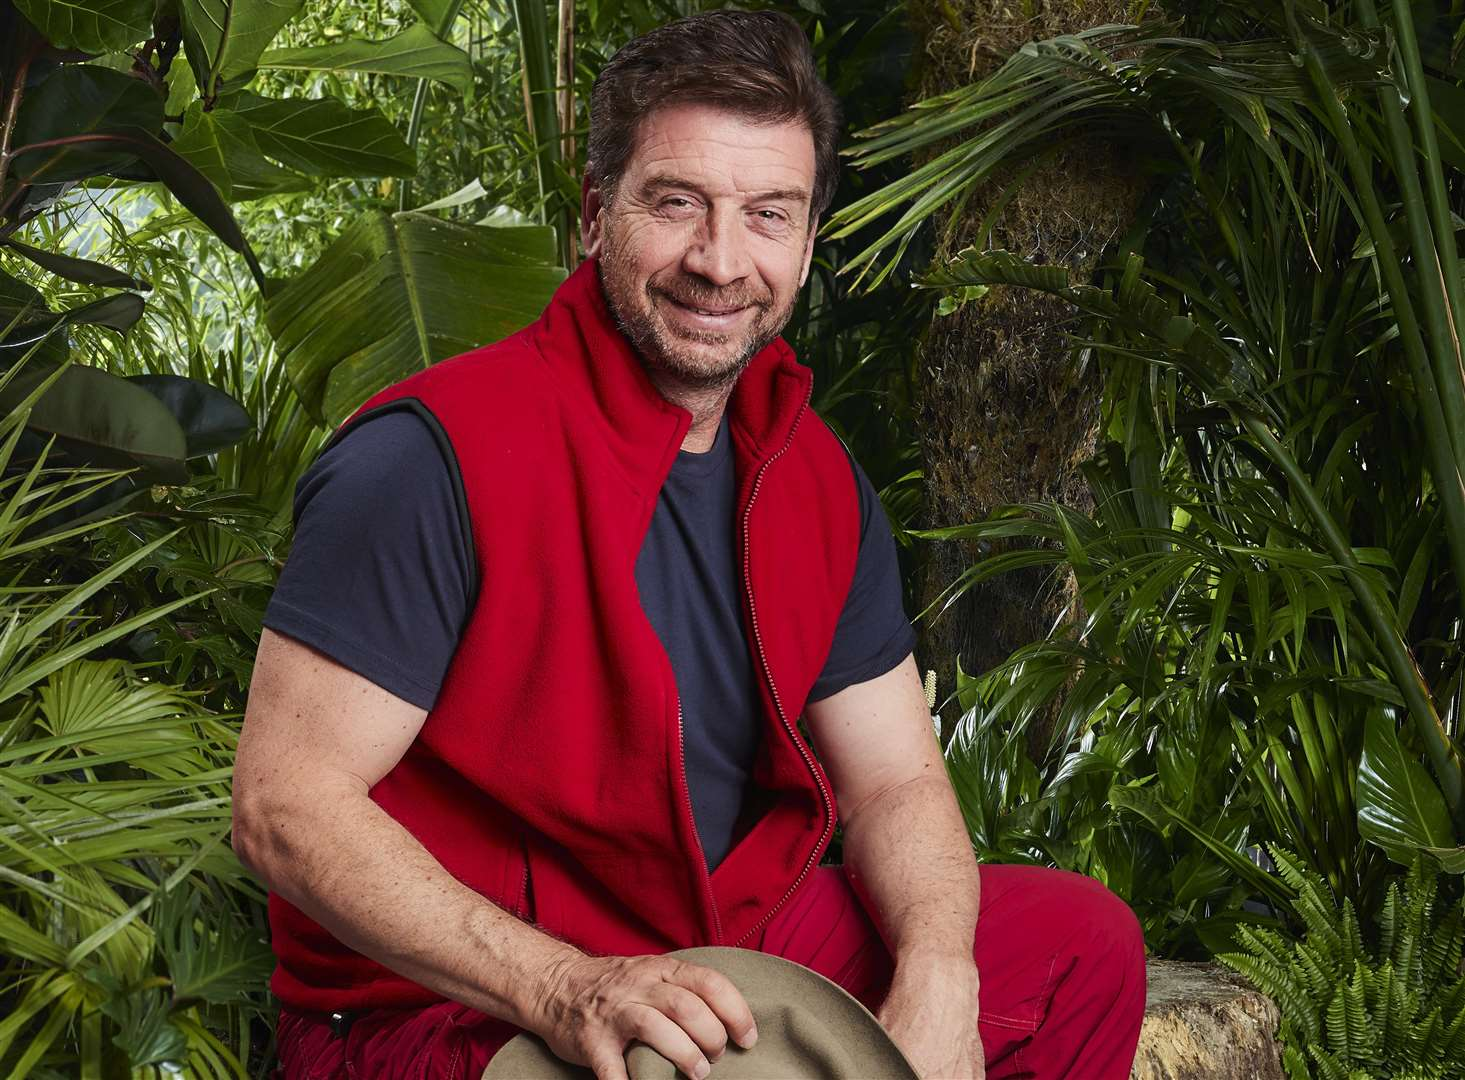 Nick Knowles has been voted out of I'm A Celebrity...